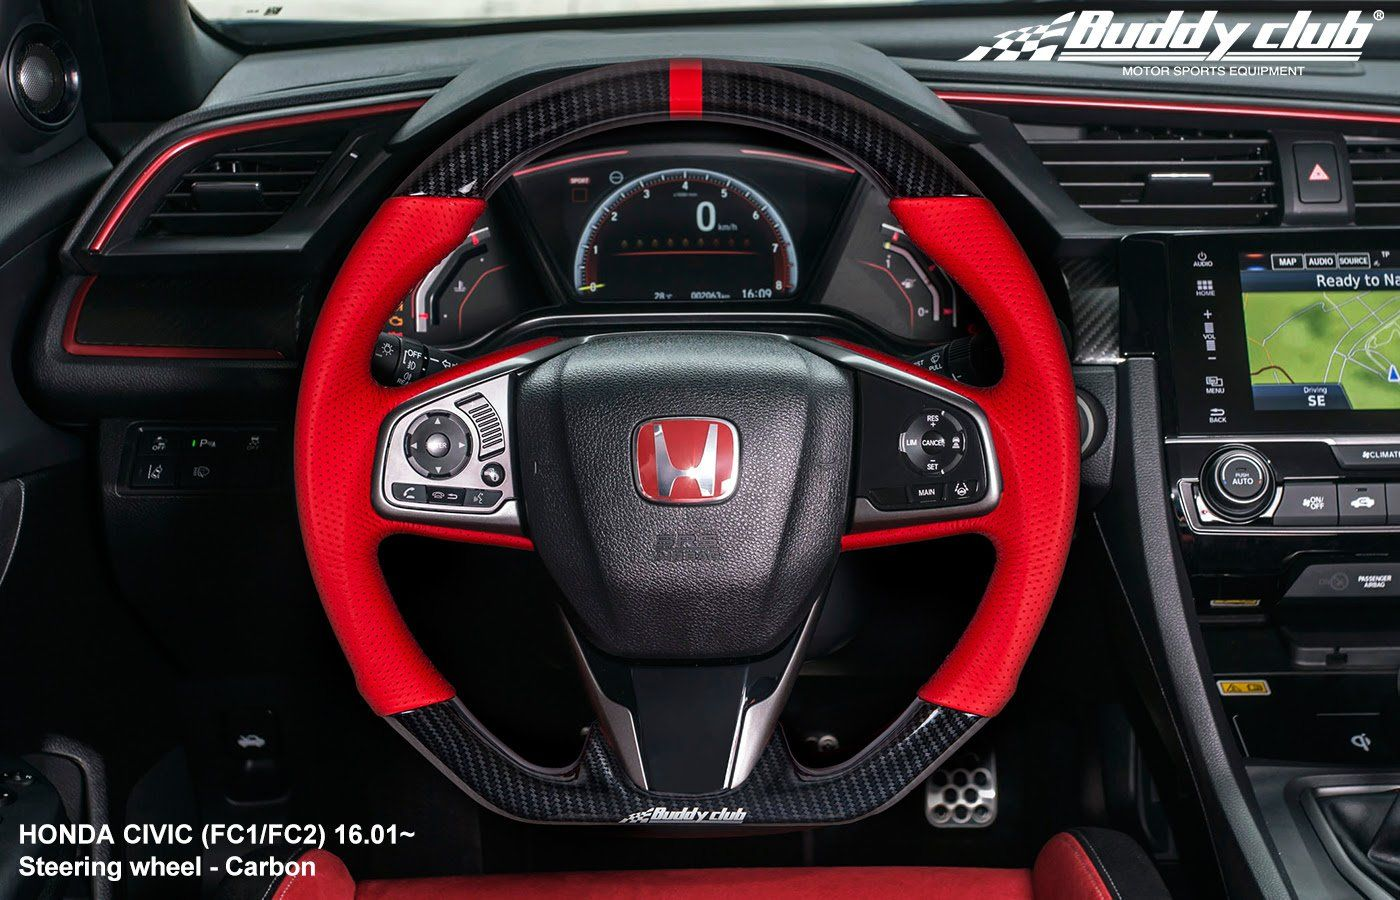 Buddy Club Steering Wheel Honda Civic 16 19 Civic Type R 17 19 Leather Or Carbon Honda Civic Honda Civic Accessories Honda Civic Si